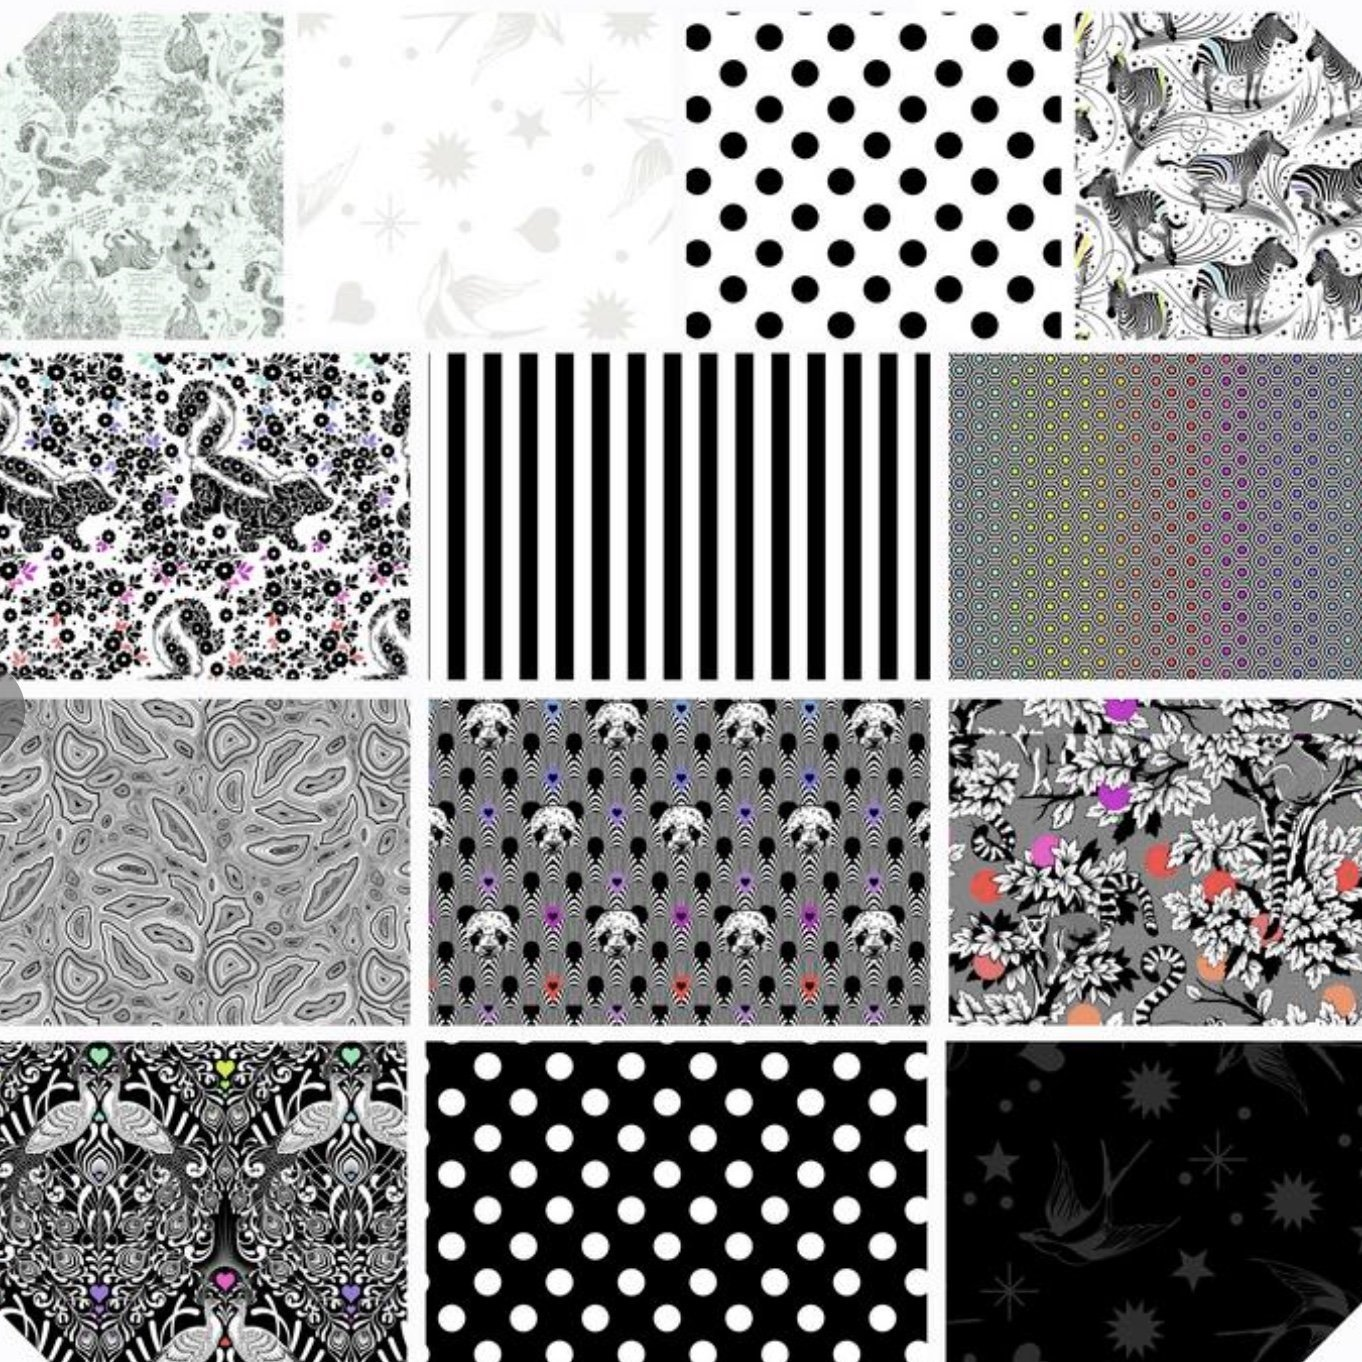 Linework 5 Charm Pack FB6CPTP.LINEWORK by Tula Pink